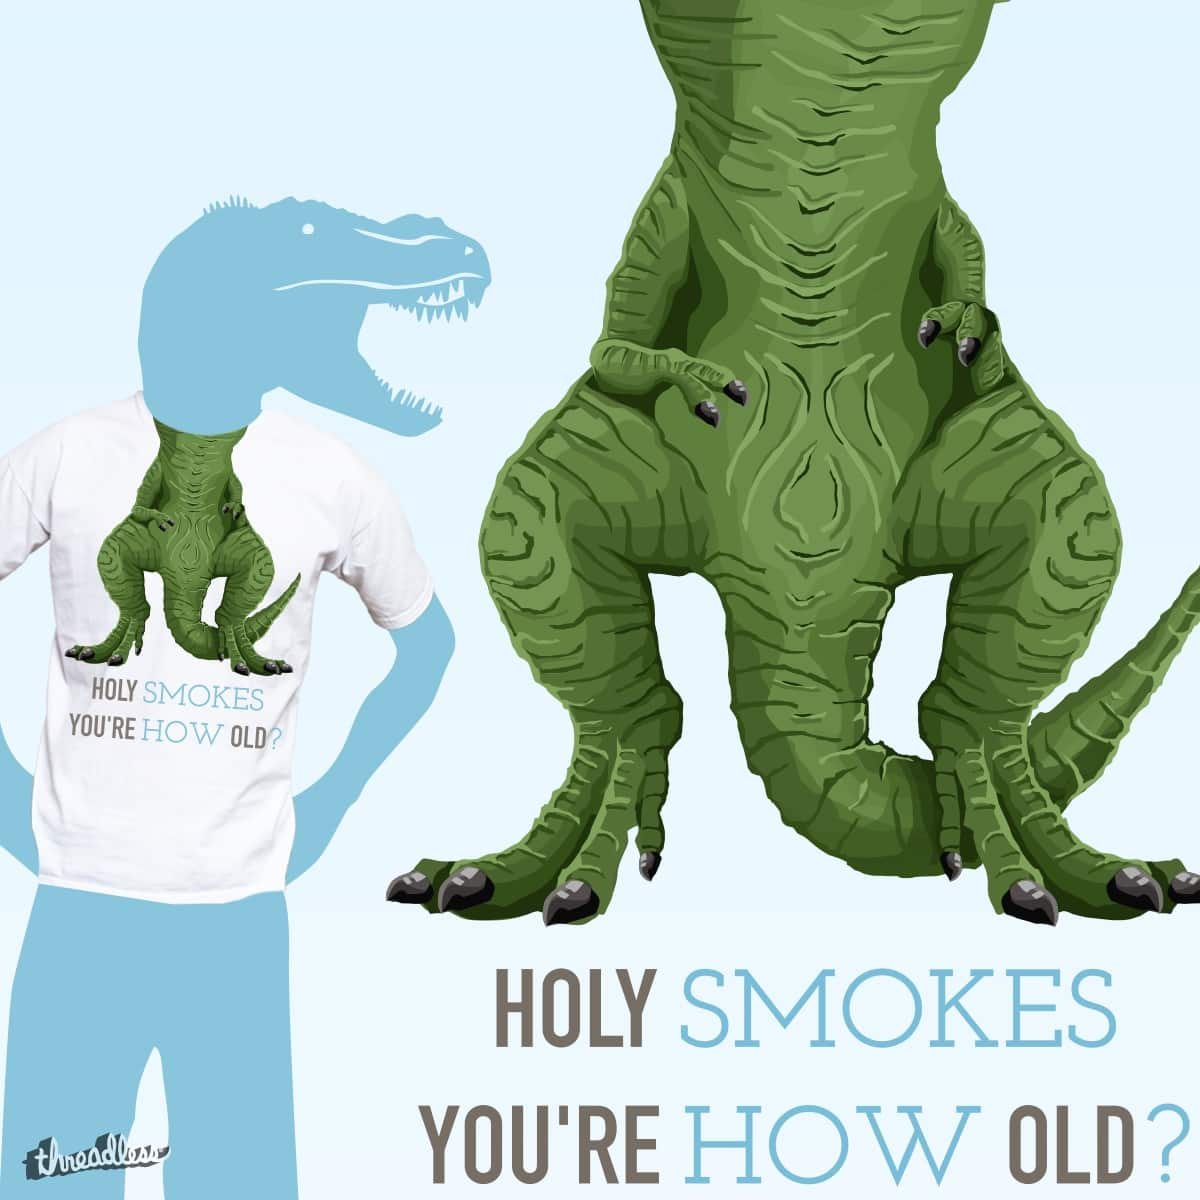 You are how old? by Natiwa on Threadless